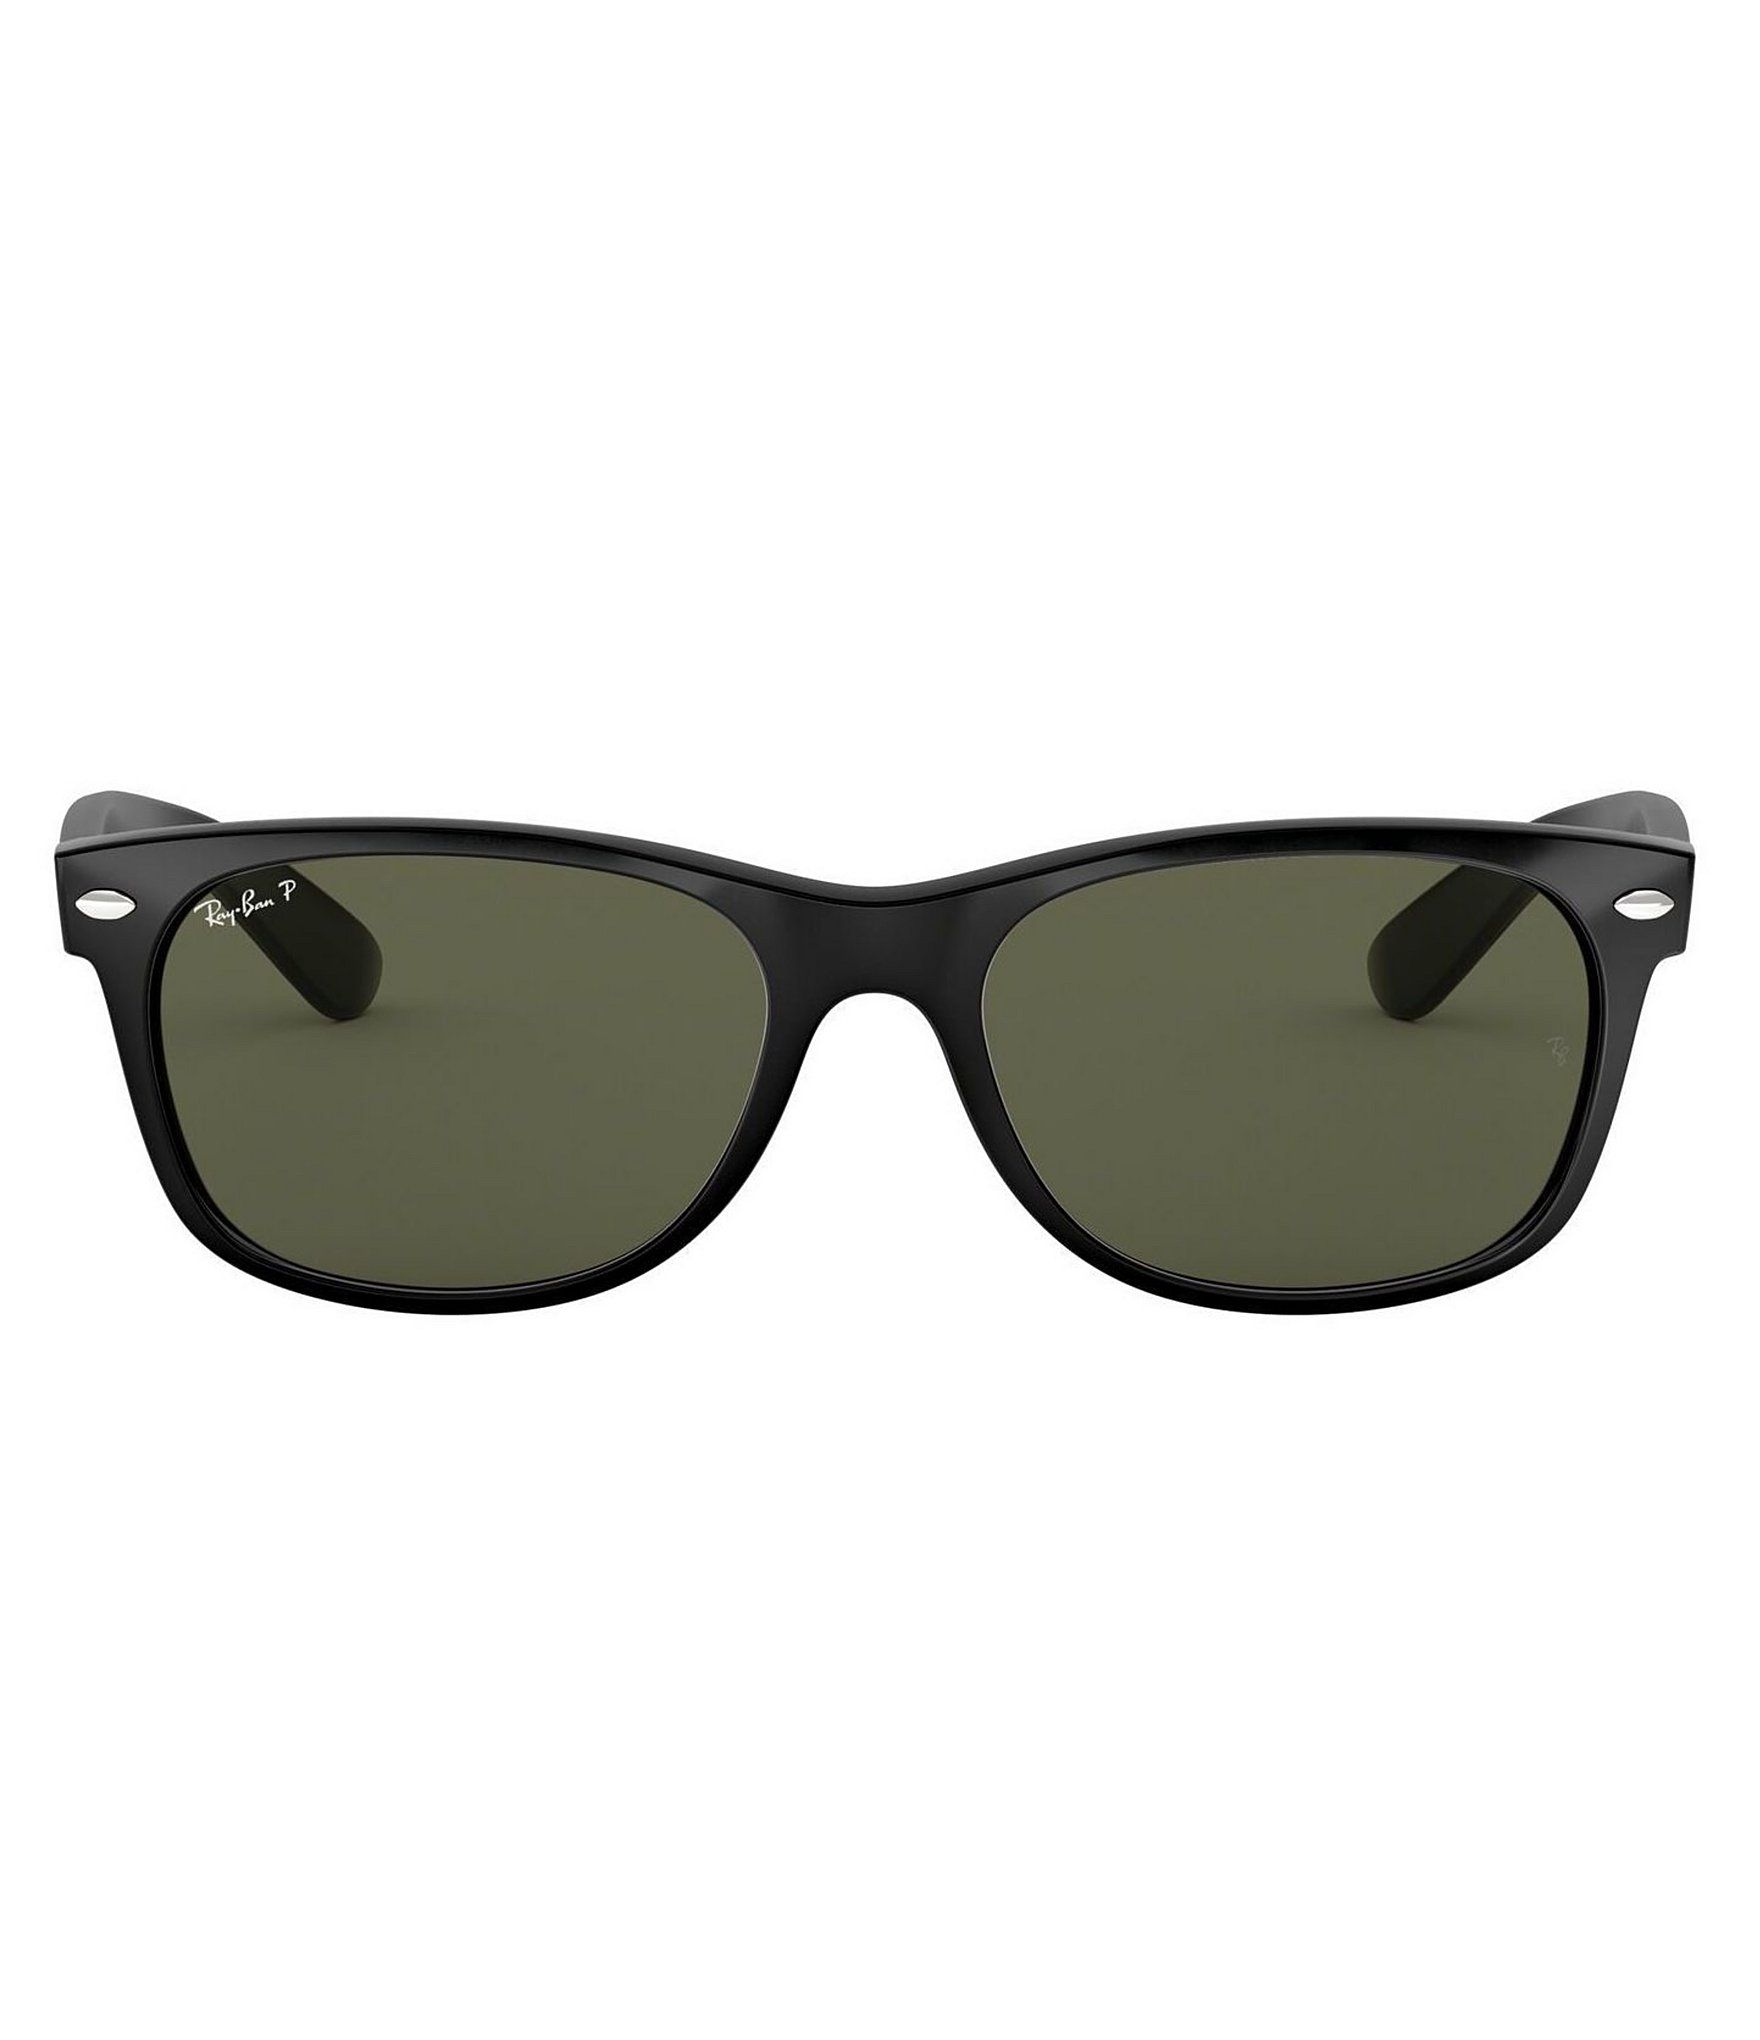 Ray Ban New Wayfarer Polarized Sunglasses Black Polar NA